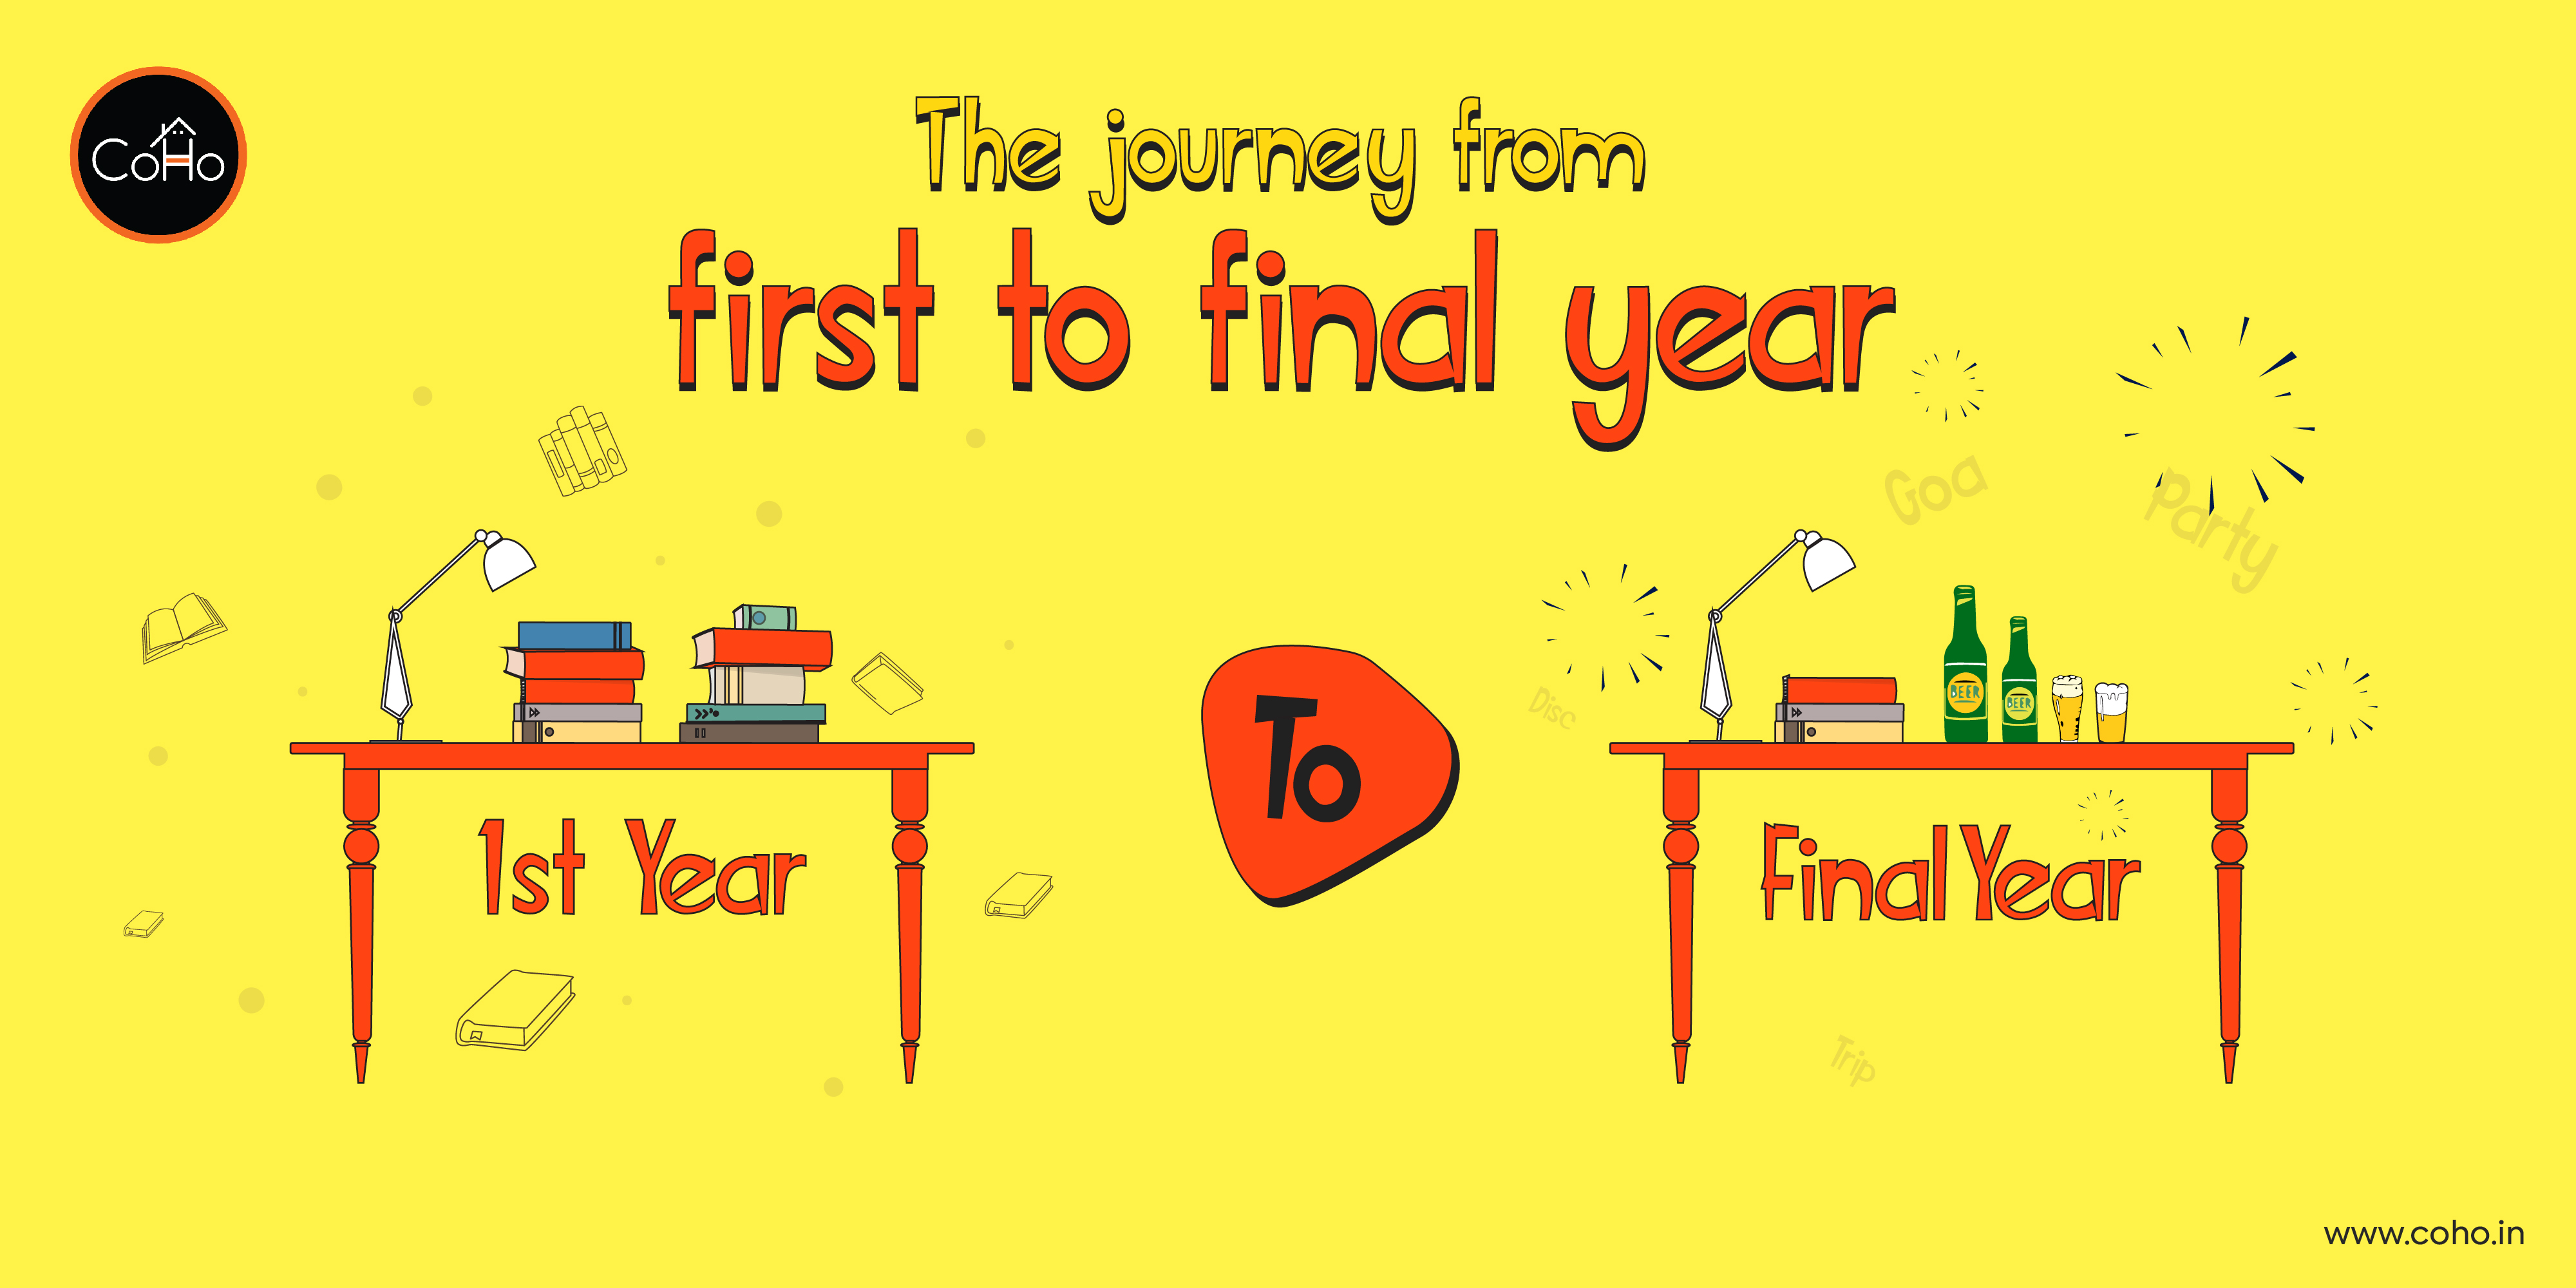 The journey from first to final year!